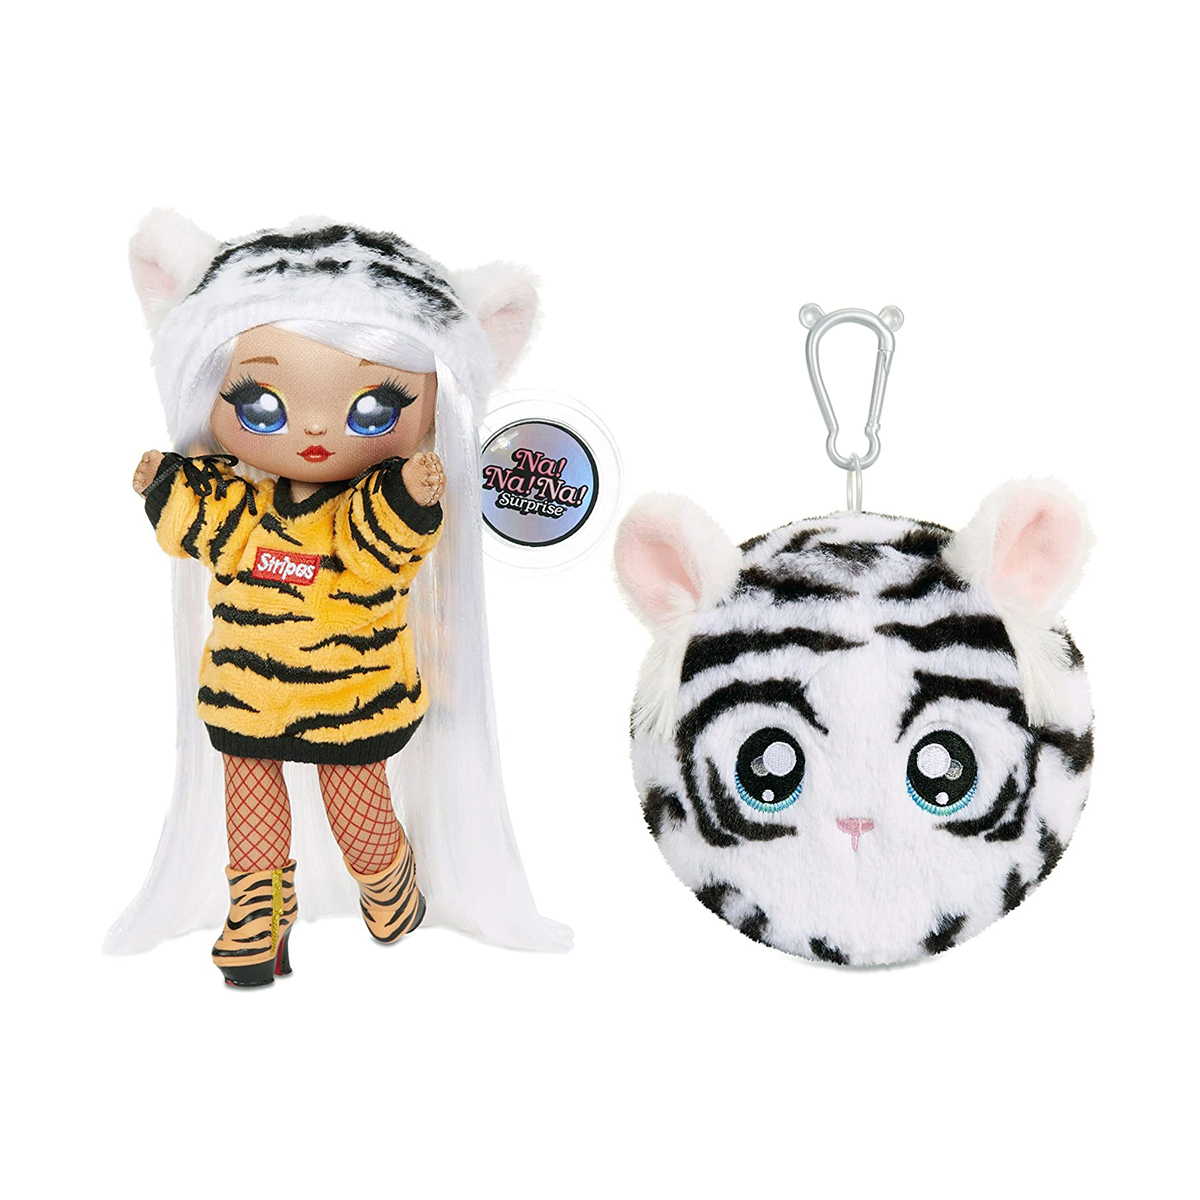 Na Na Na Surprise 2 in 1, S4 - Papusa si accesoriu fashion, Bianca Bengal, 571742E7C